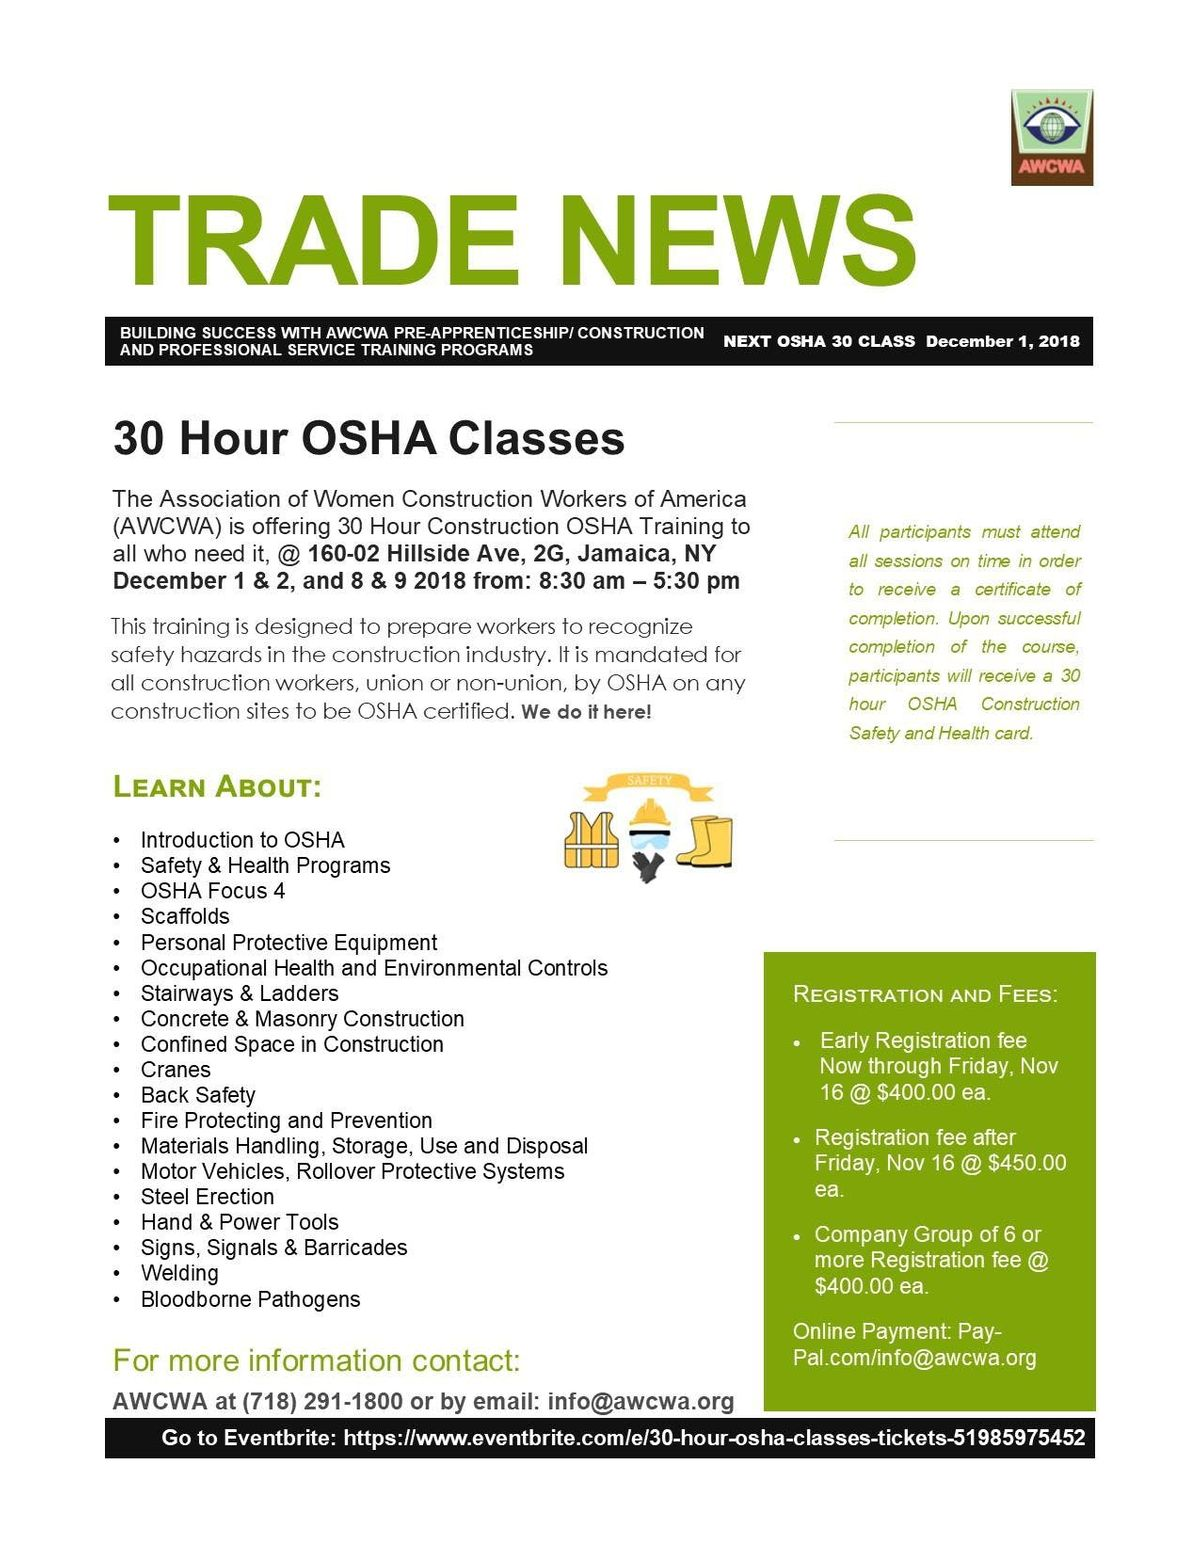 30 Hour Osha Classes At Association Of Women Construction Workers Of